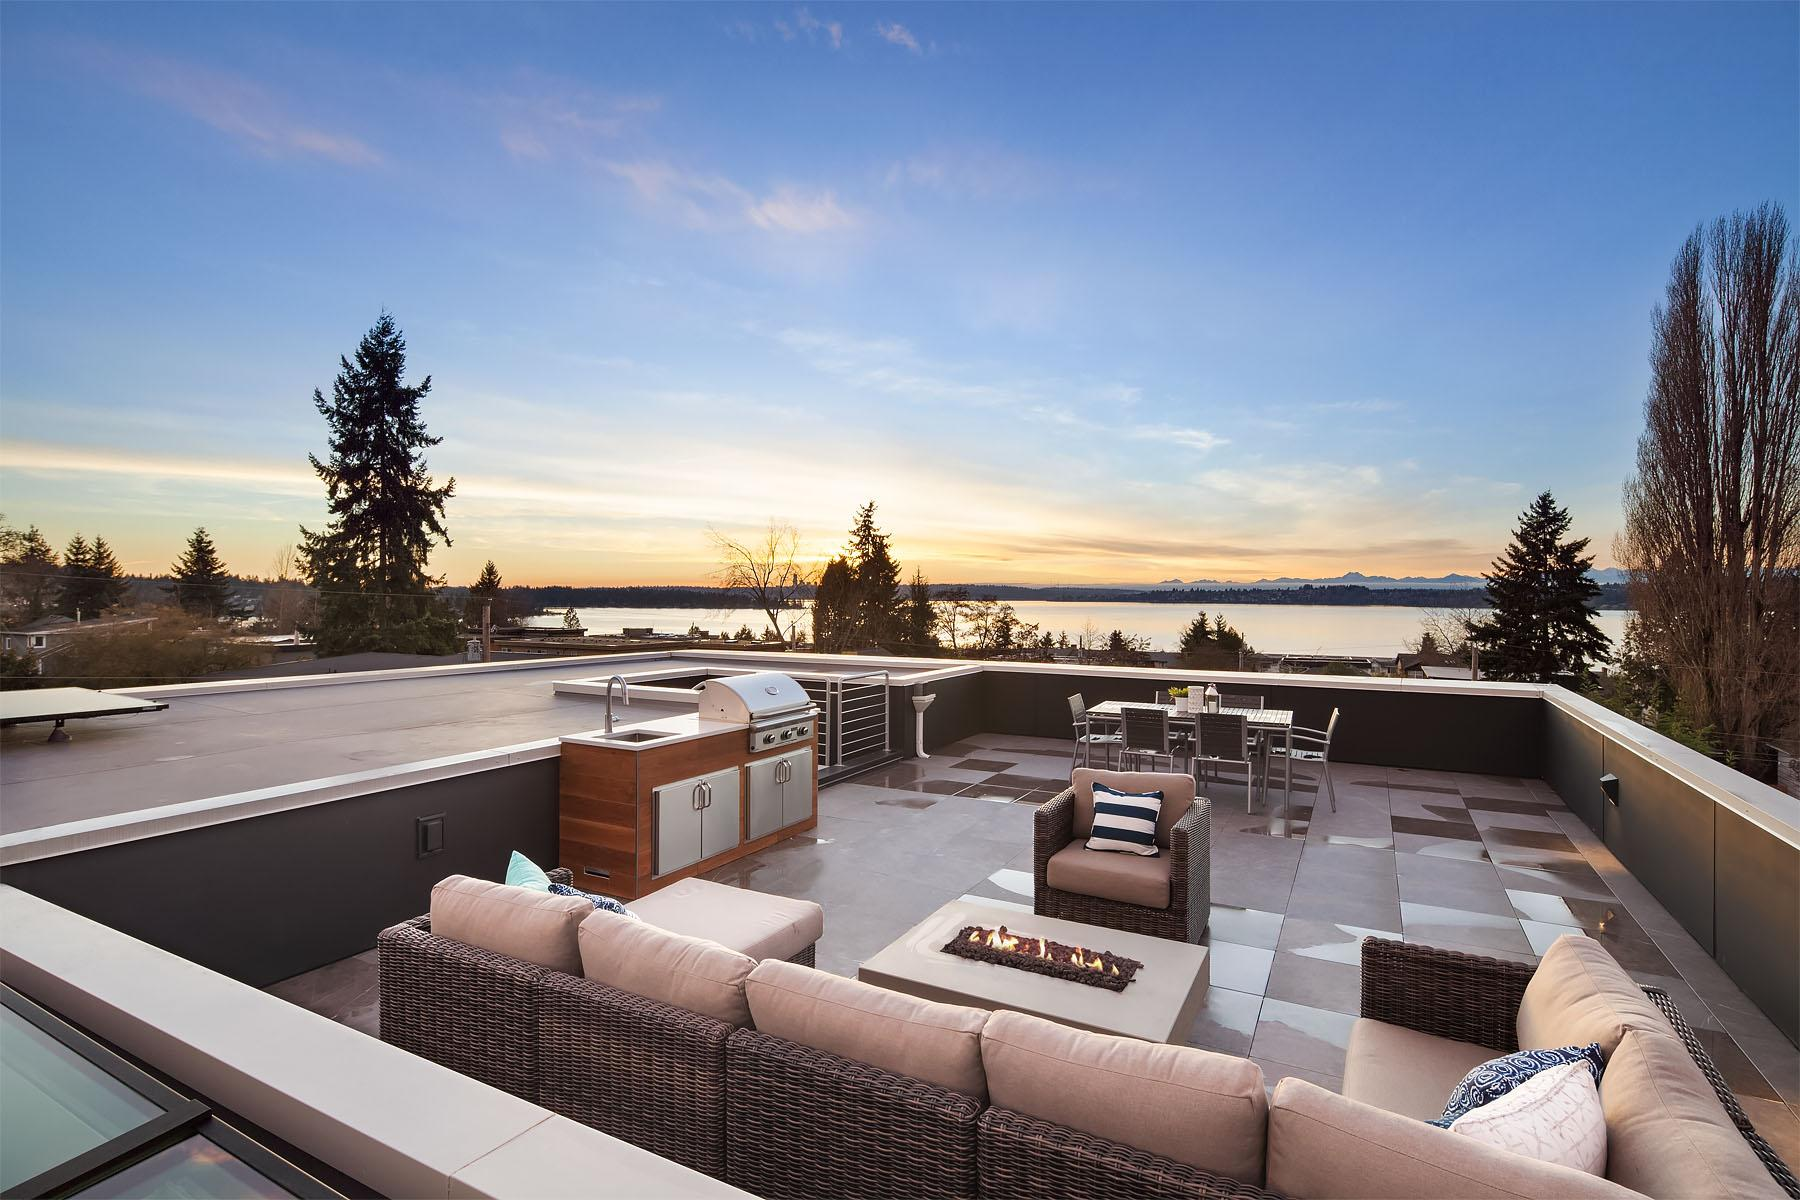 Listed by Rombakh Real Estate, the Houghton House in Kirkland is what dreams are made of (Image: Matthew Galant with Clarity Northwest)